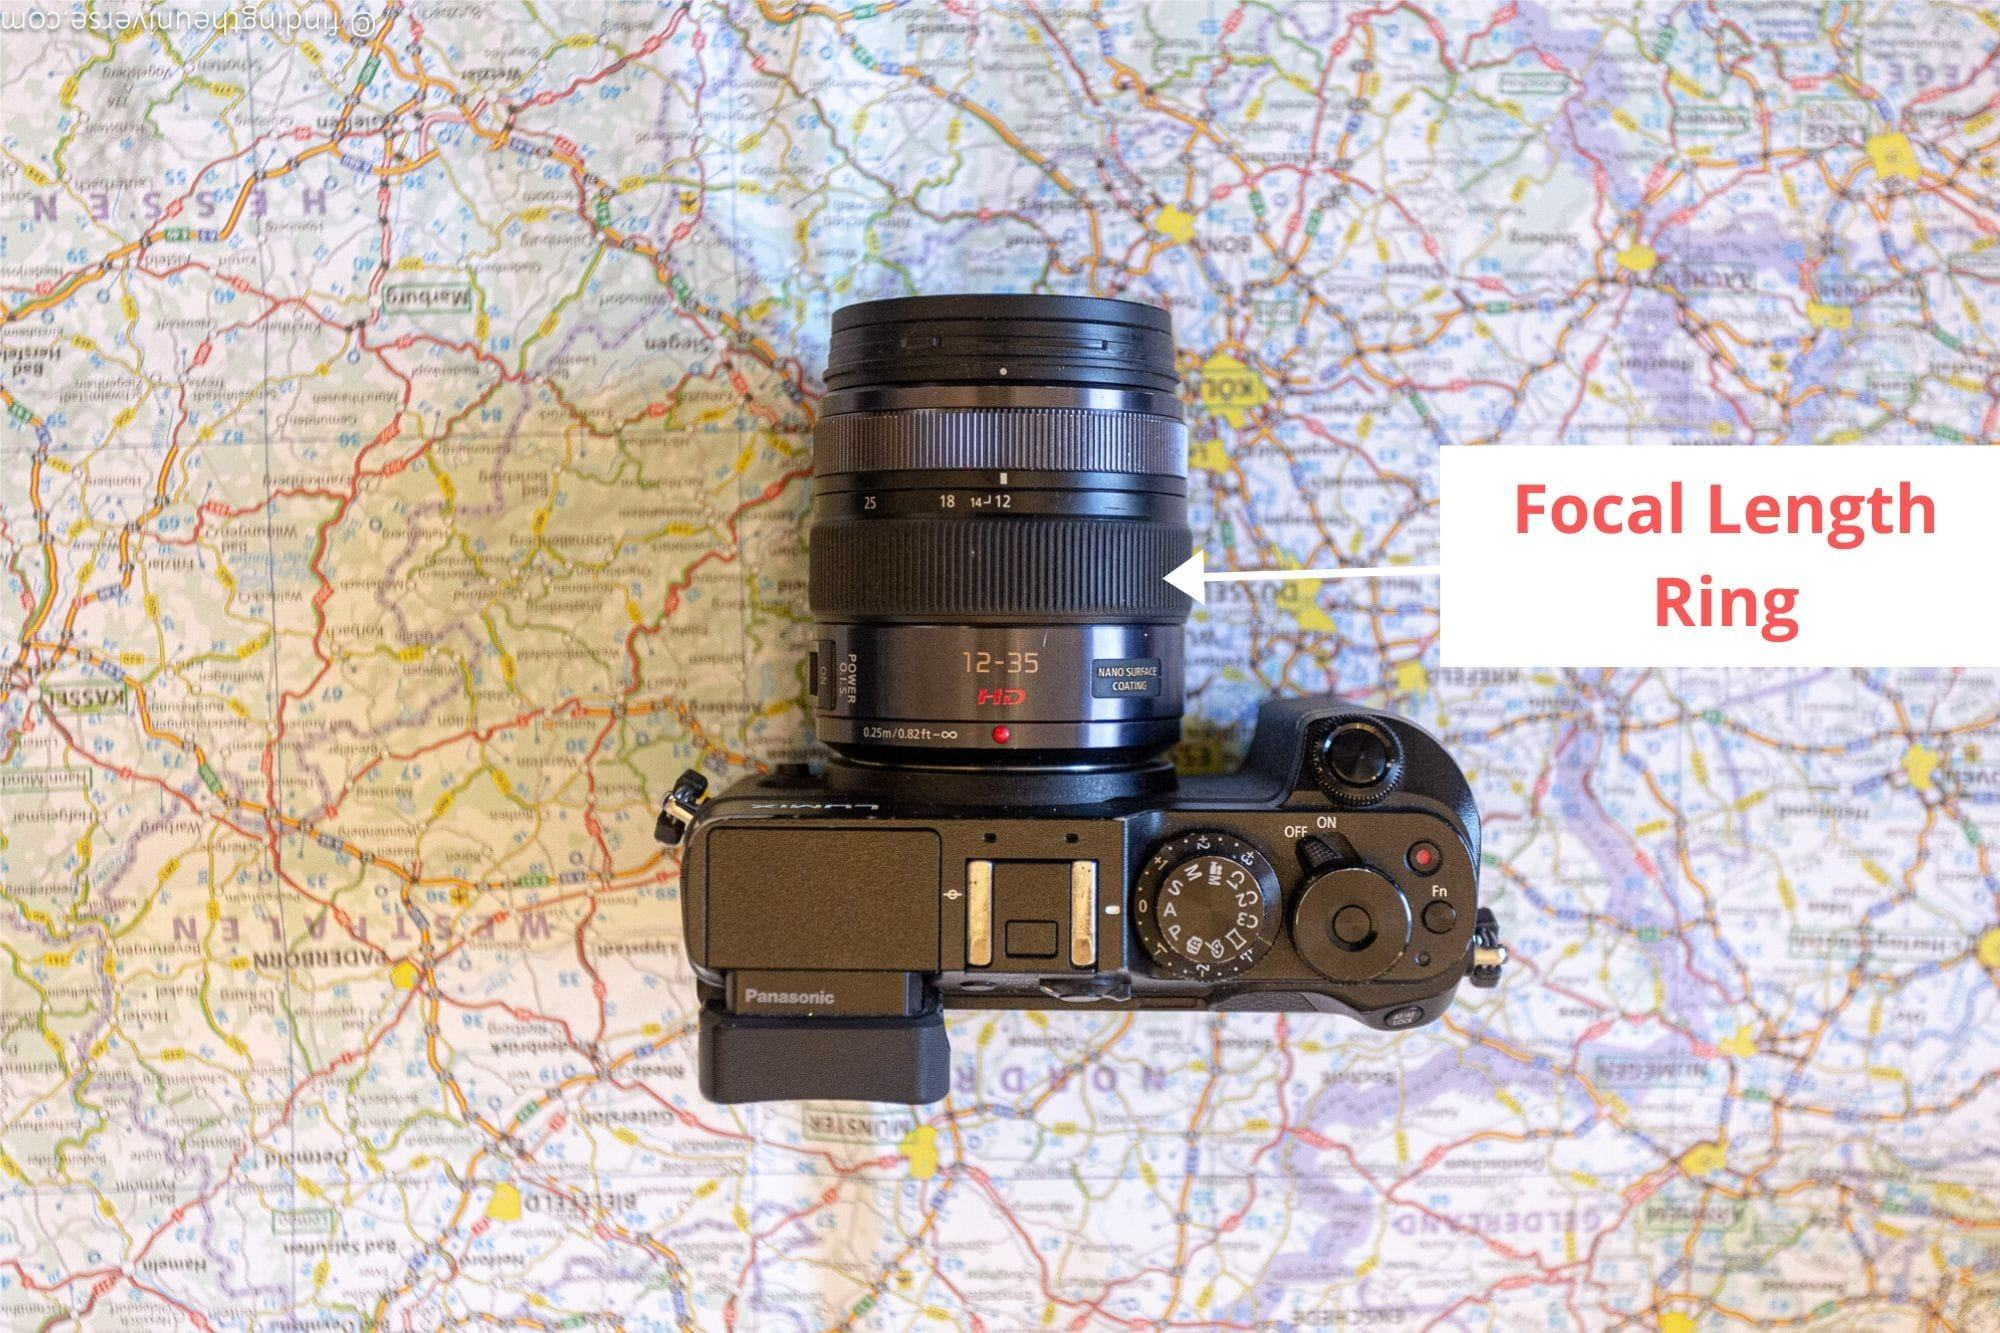 Focal Length Ring